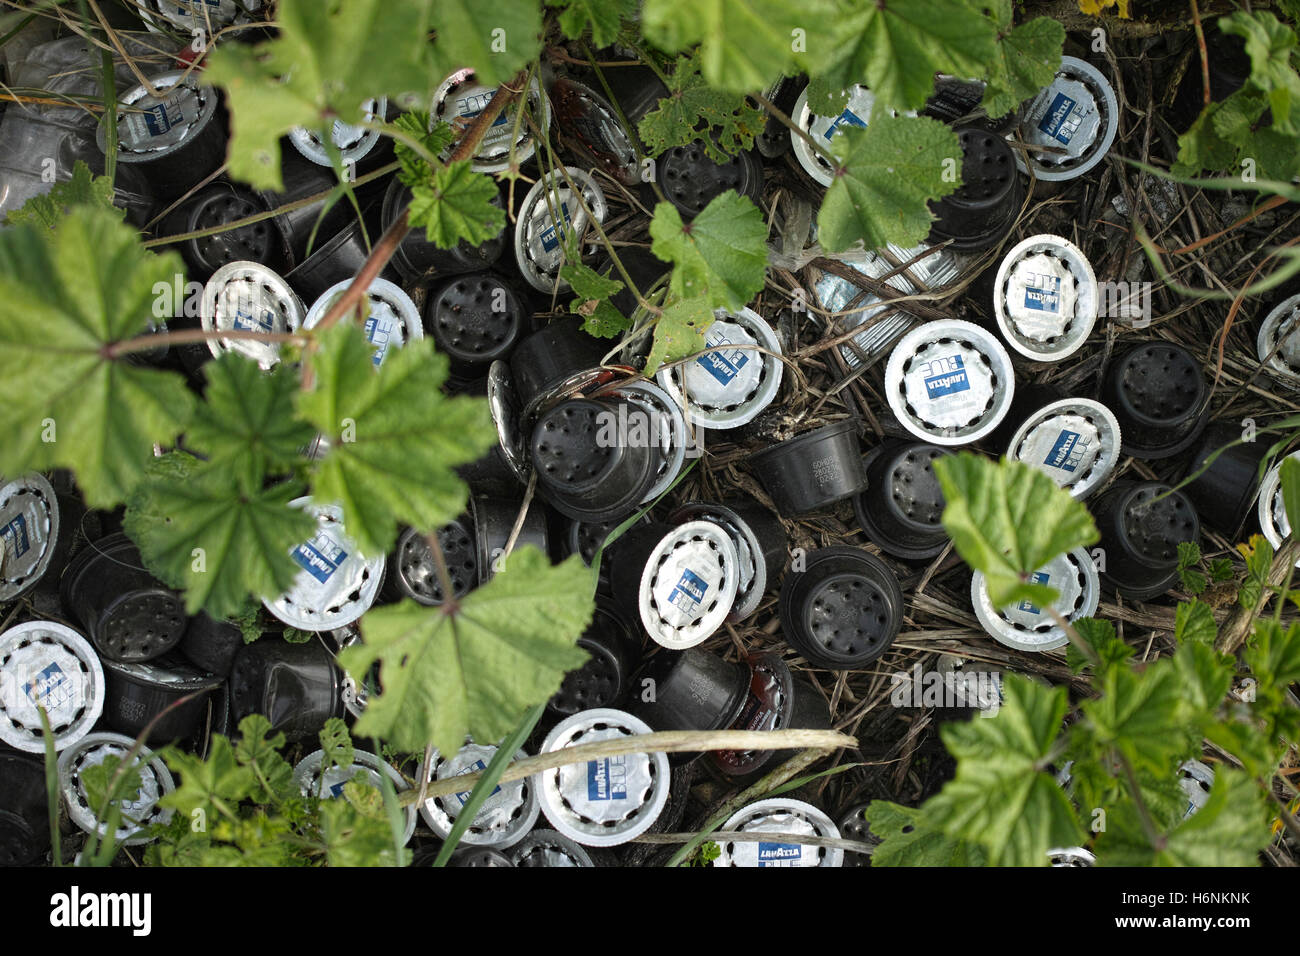 Discarded coffee capsules made of plastic and aluminium amongst the undergrowth. - Stock Image